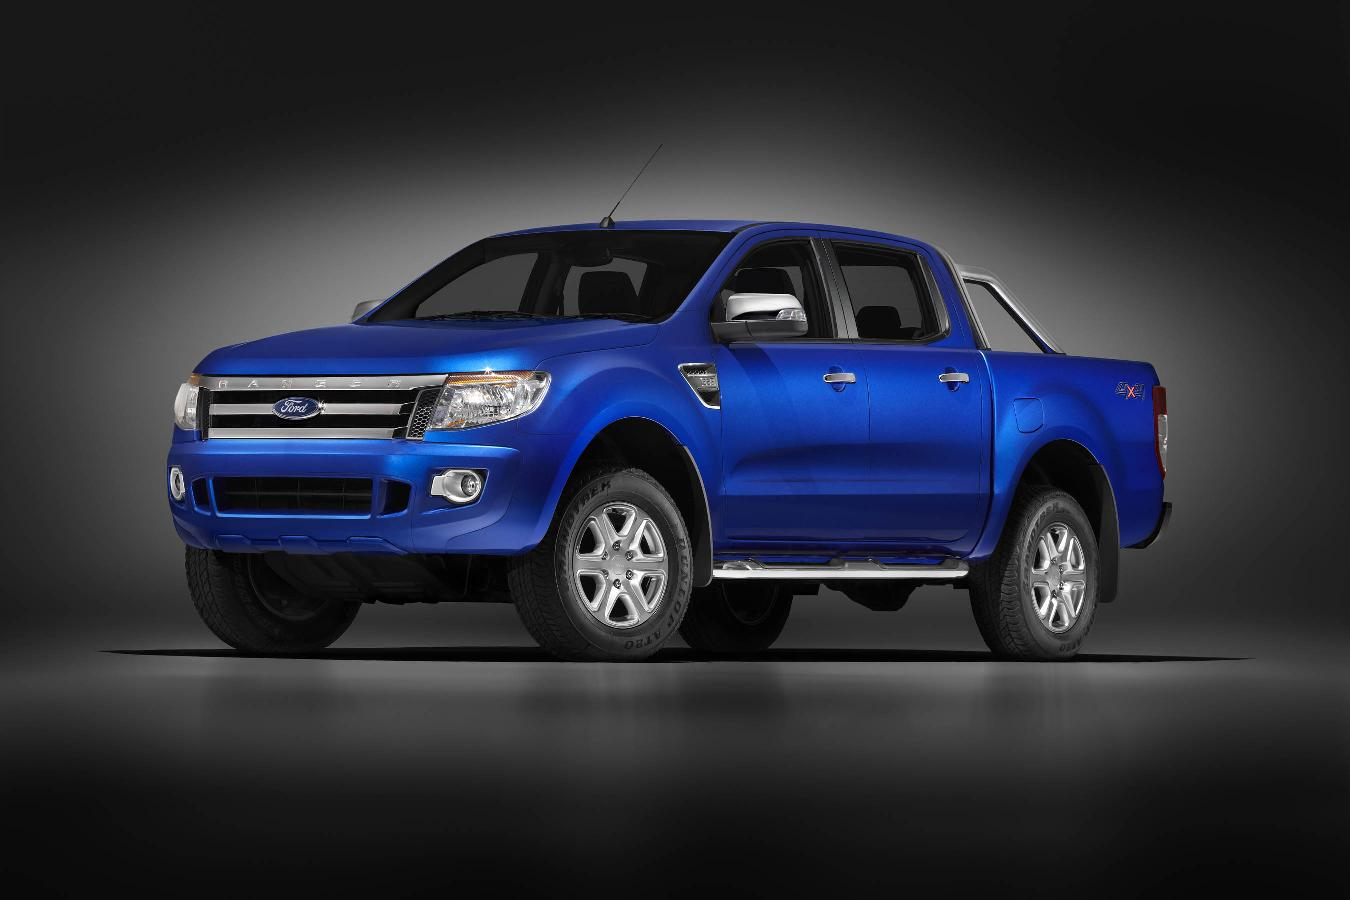 Ford Ranger Tuning >> 2012 Ford Ranger Revealed - autoevolution